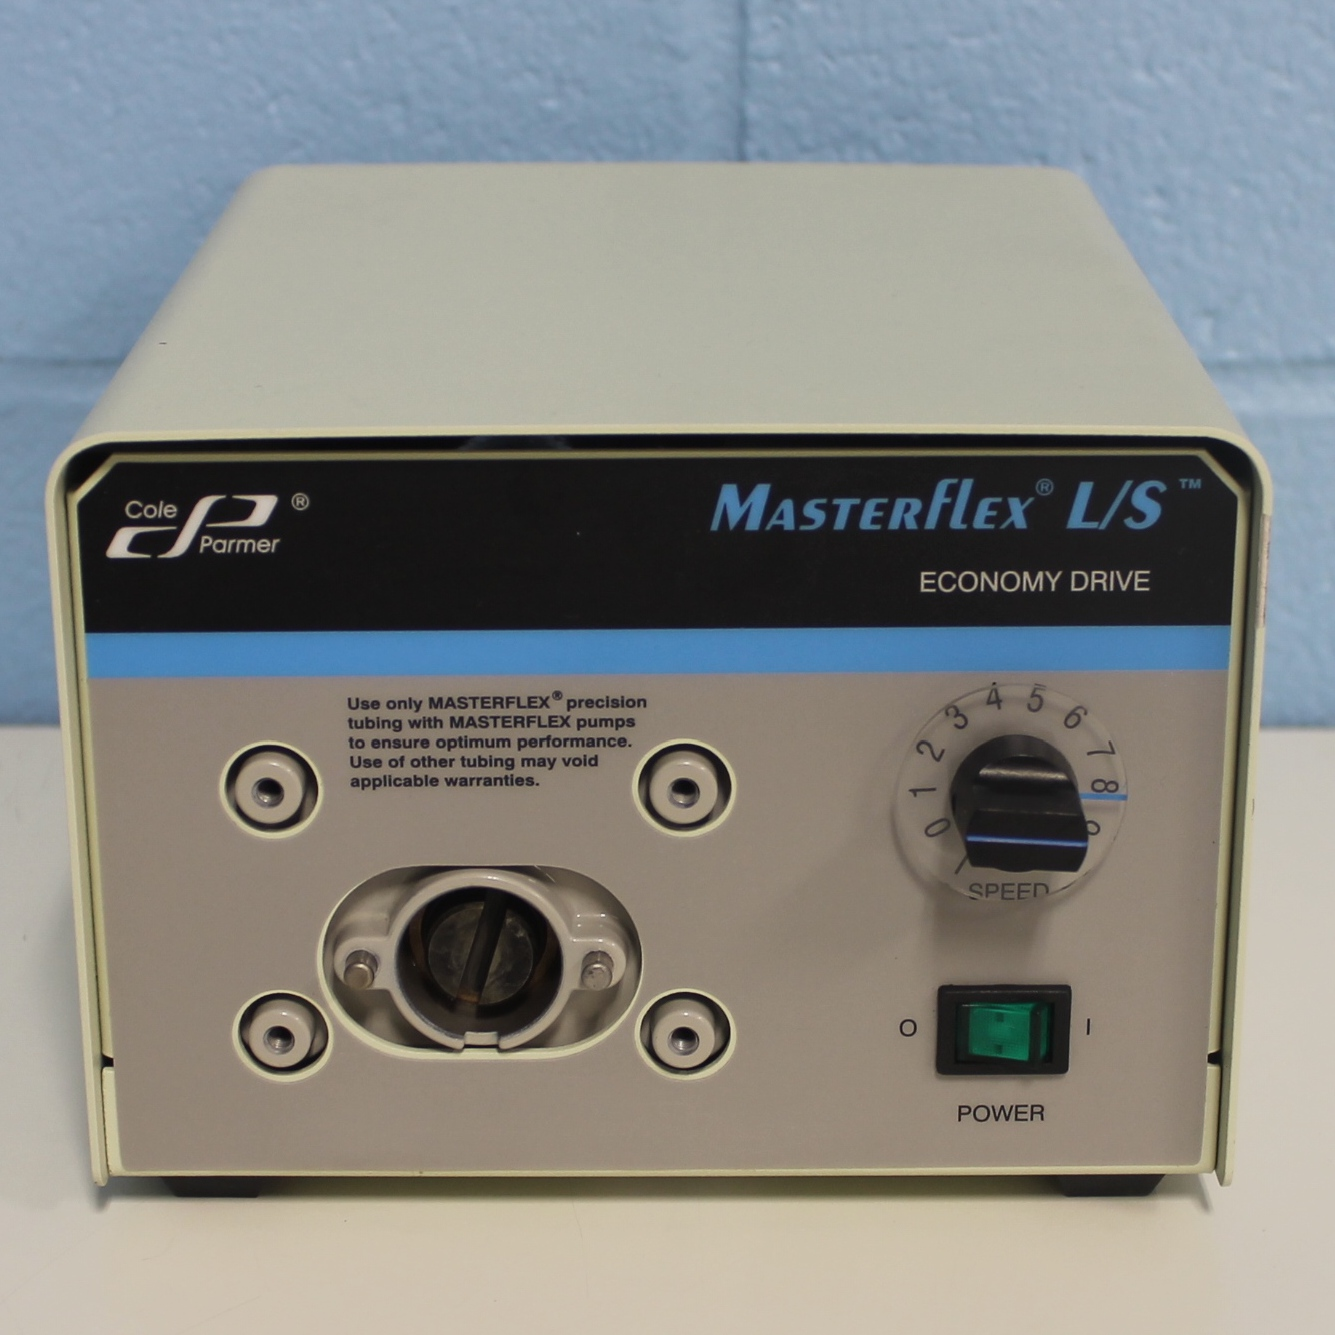 Cole-Parmer Masterflex L/S Economy Variable-speed Drive Model 7554-95 Image